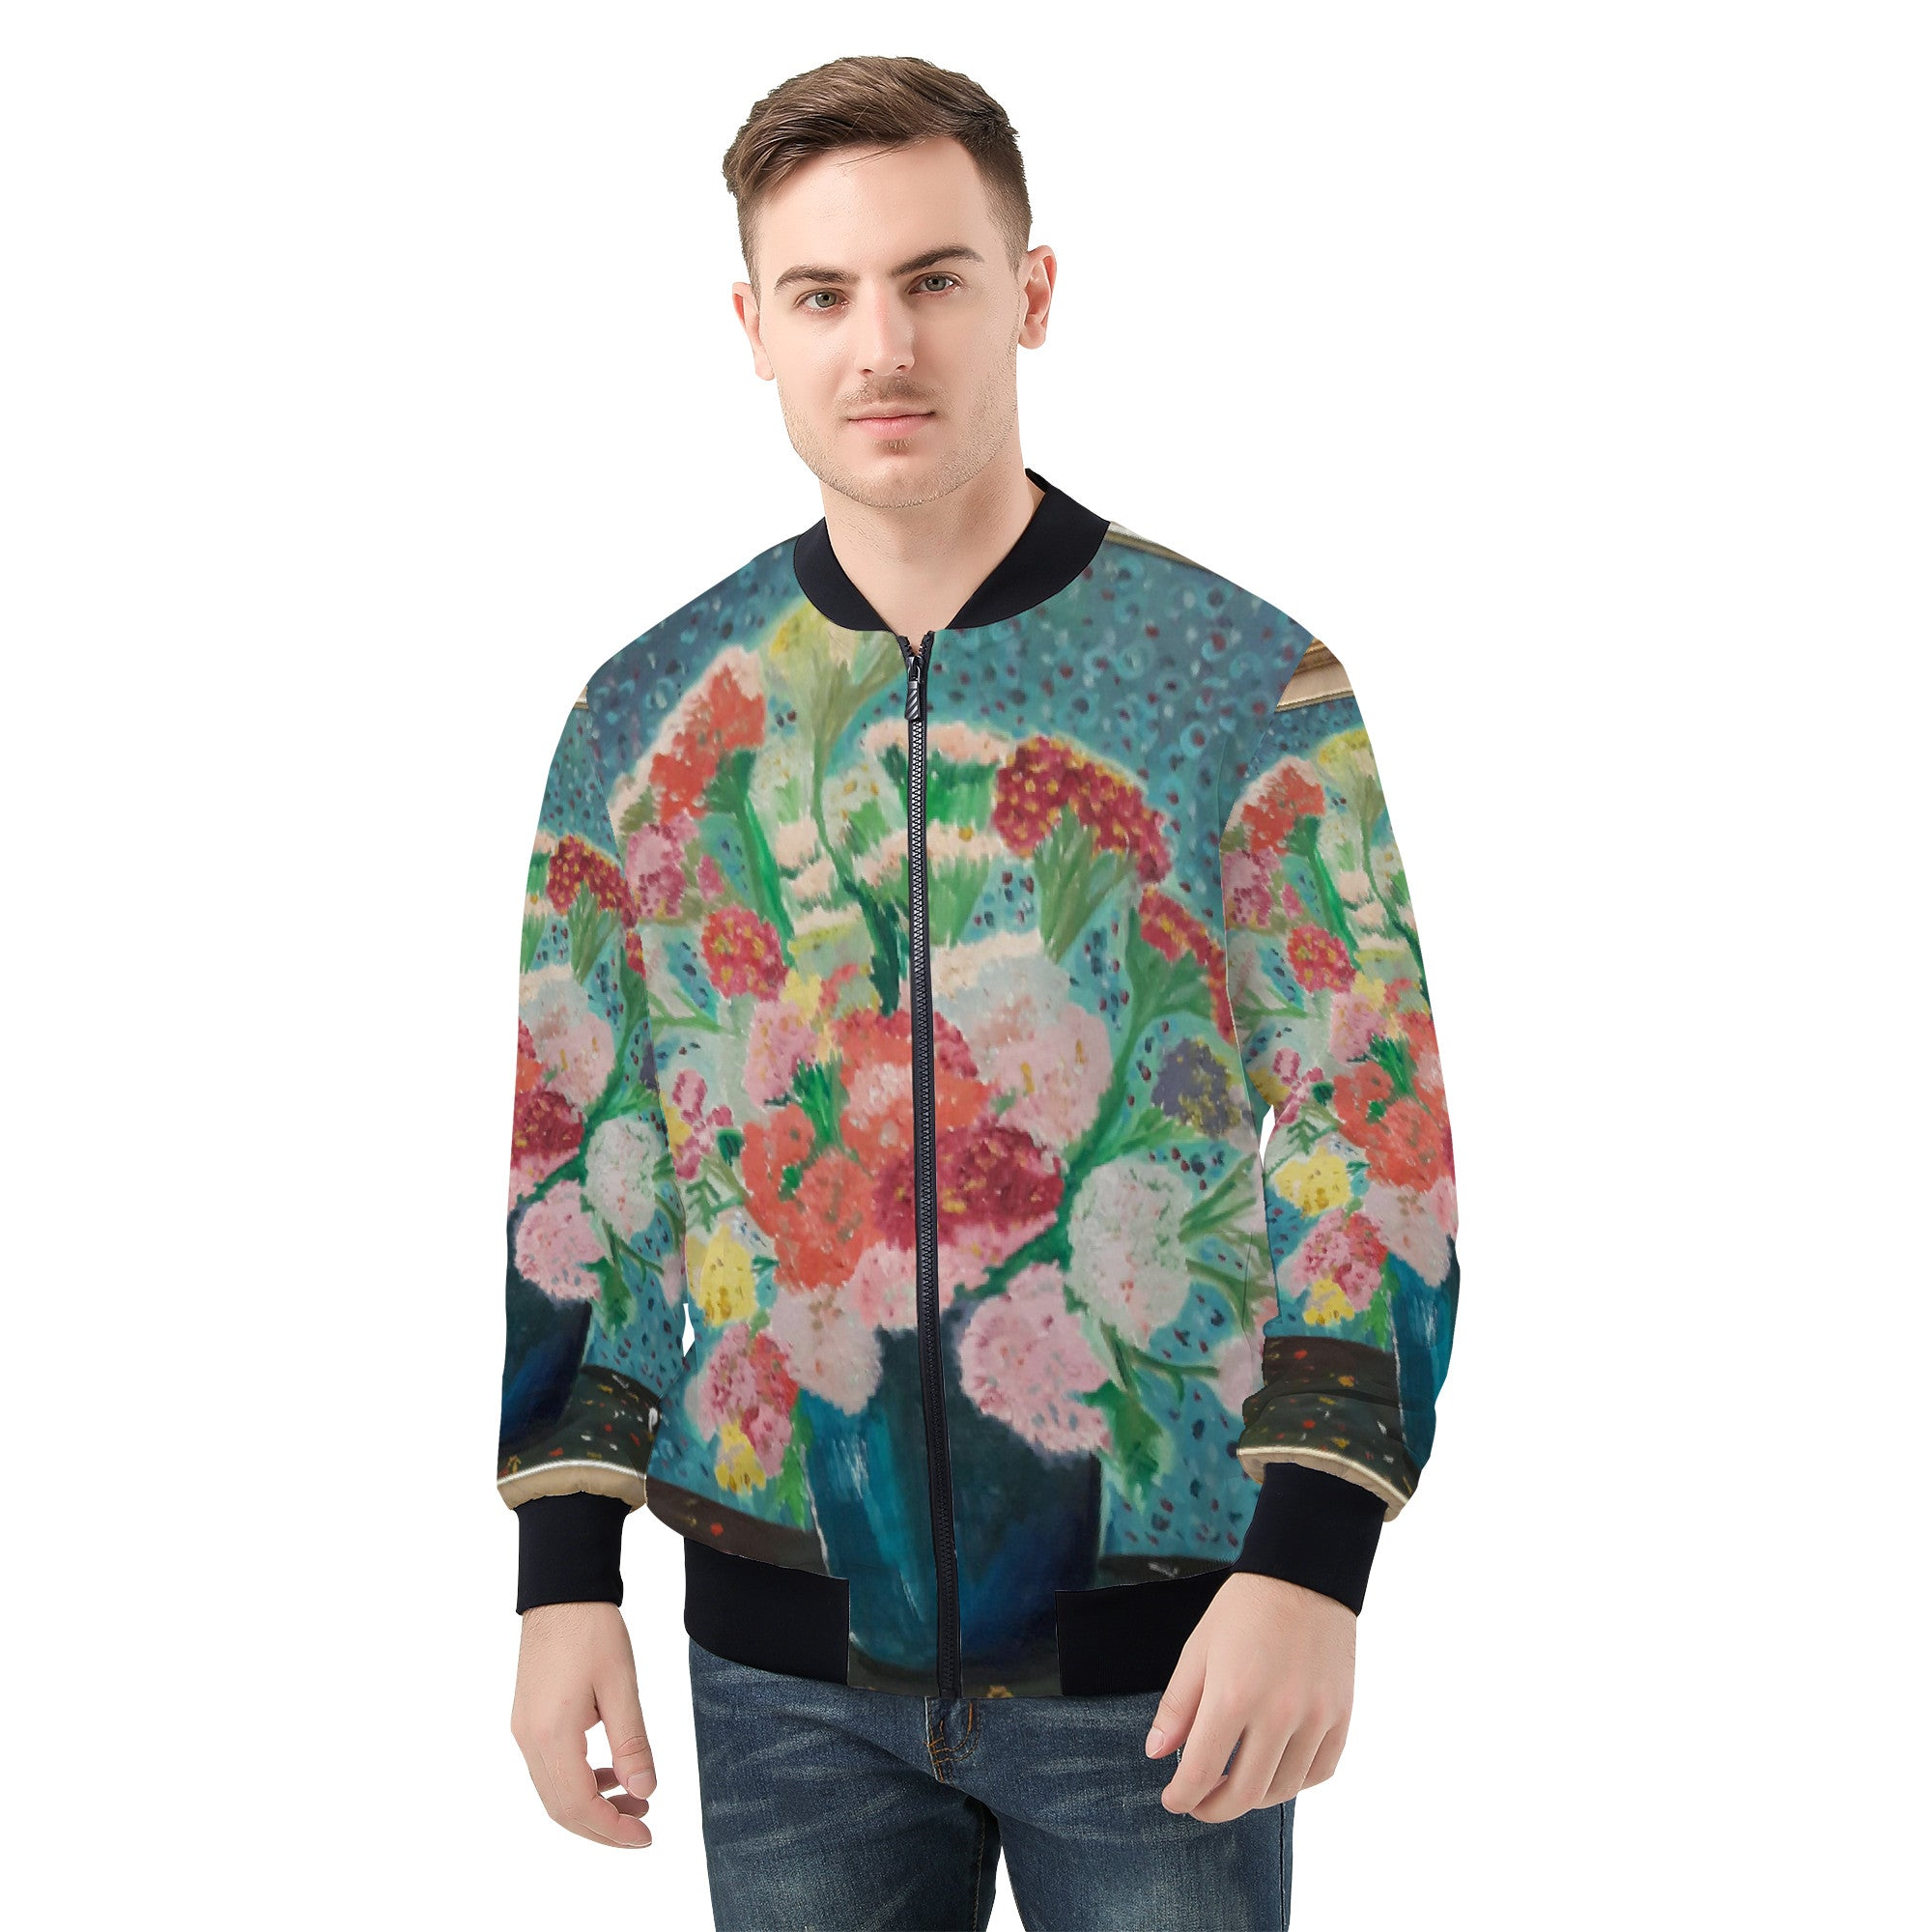 SF_D81 Men's Bomber Jacket